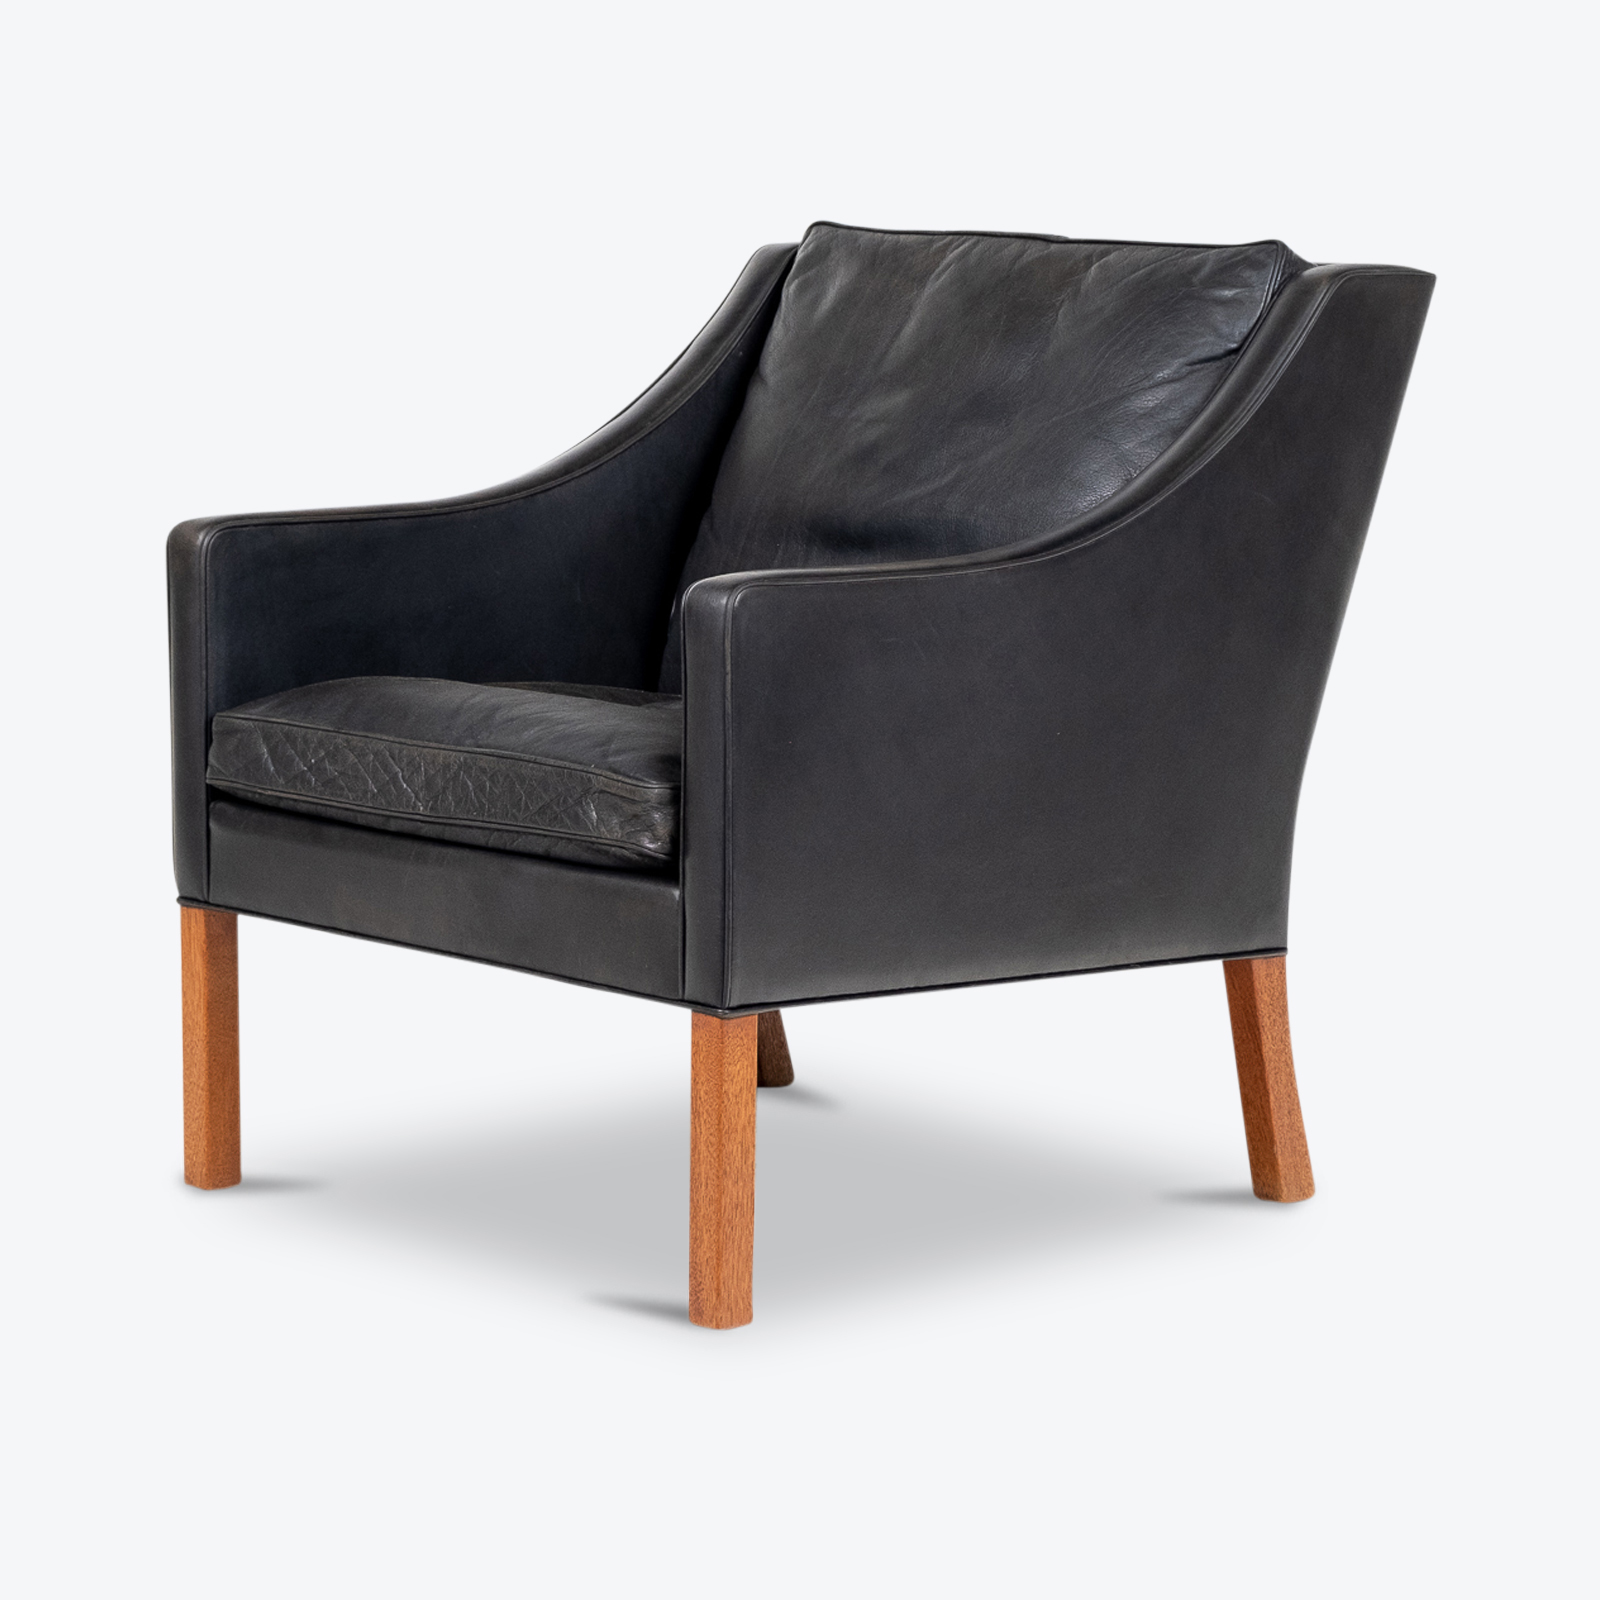 Model 2207 Armchair With Footstool Designed By Borge Mogensen For Fredericia Mobelfabrik In Black Leather, 1960s, Denmark Hero